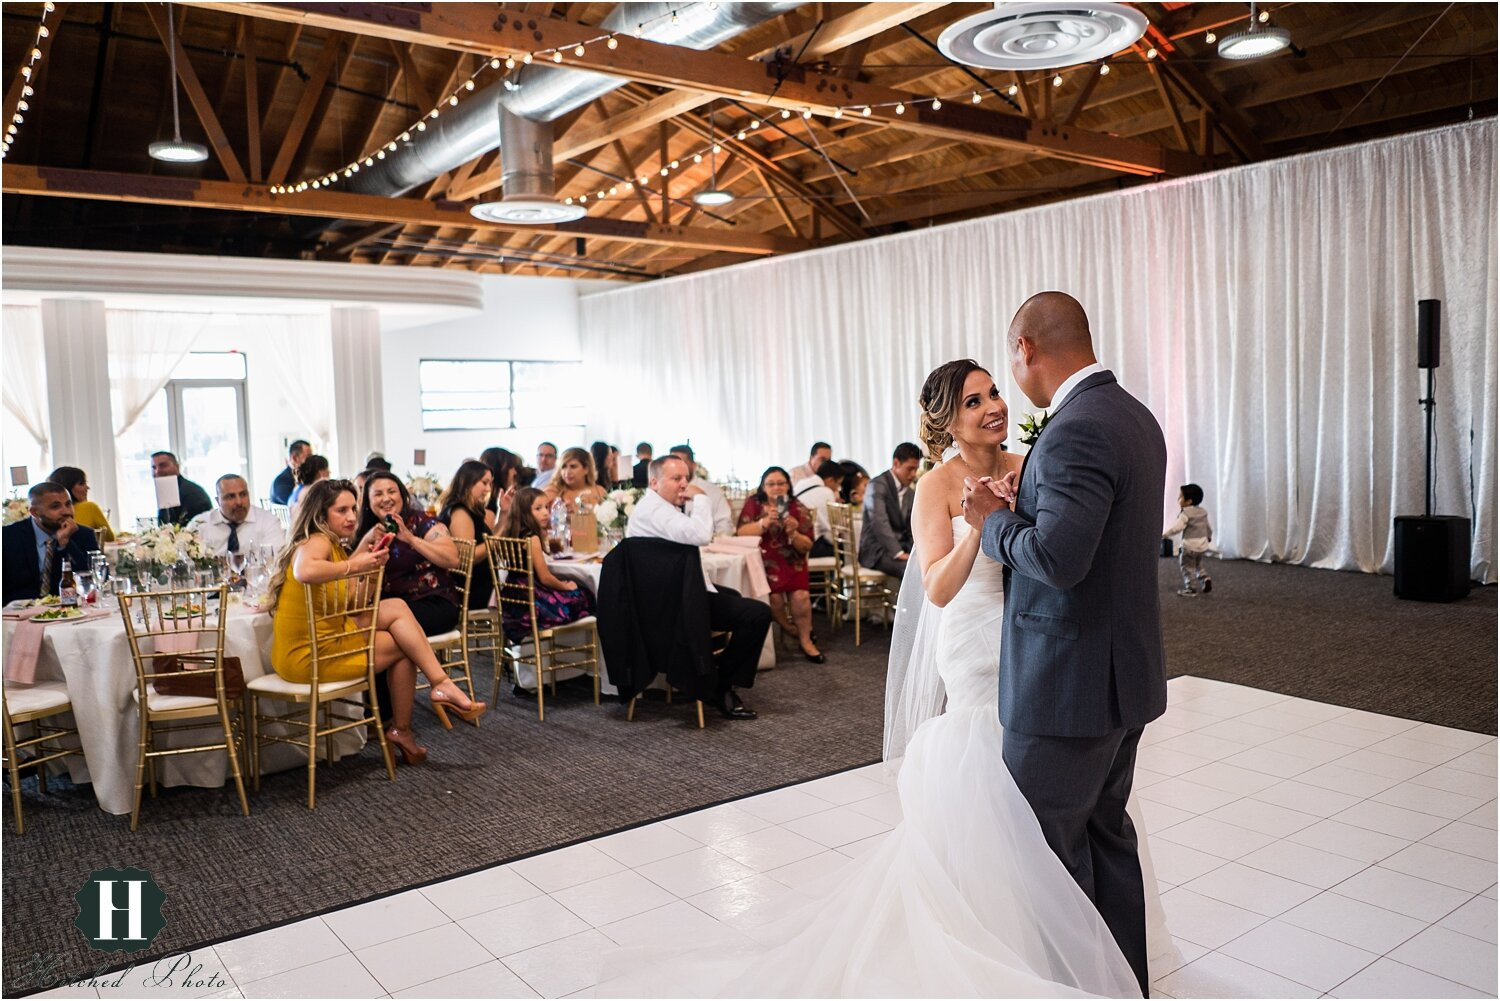 Wayfarers-Chapel-Wedding_Catalina-Room-Reception_Redondo-Beach_Palos-Verdes_Hitched-Photo105.jpg